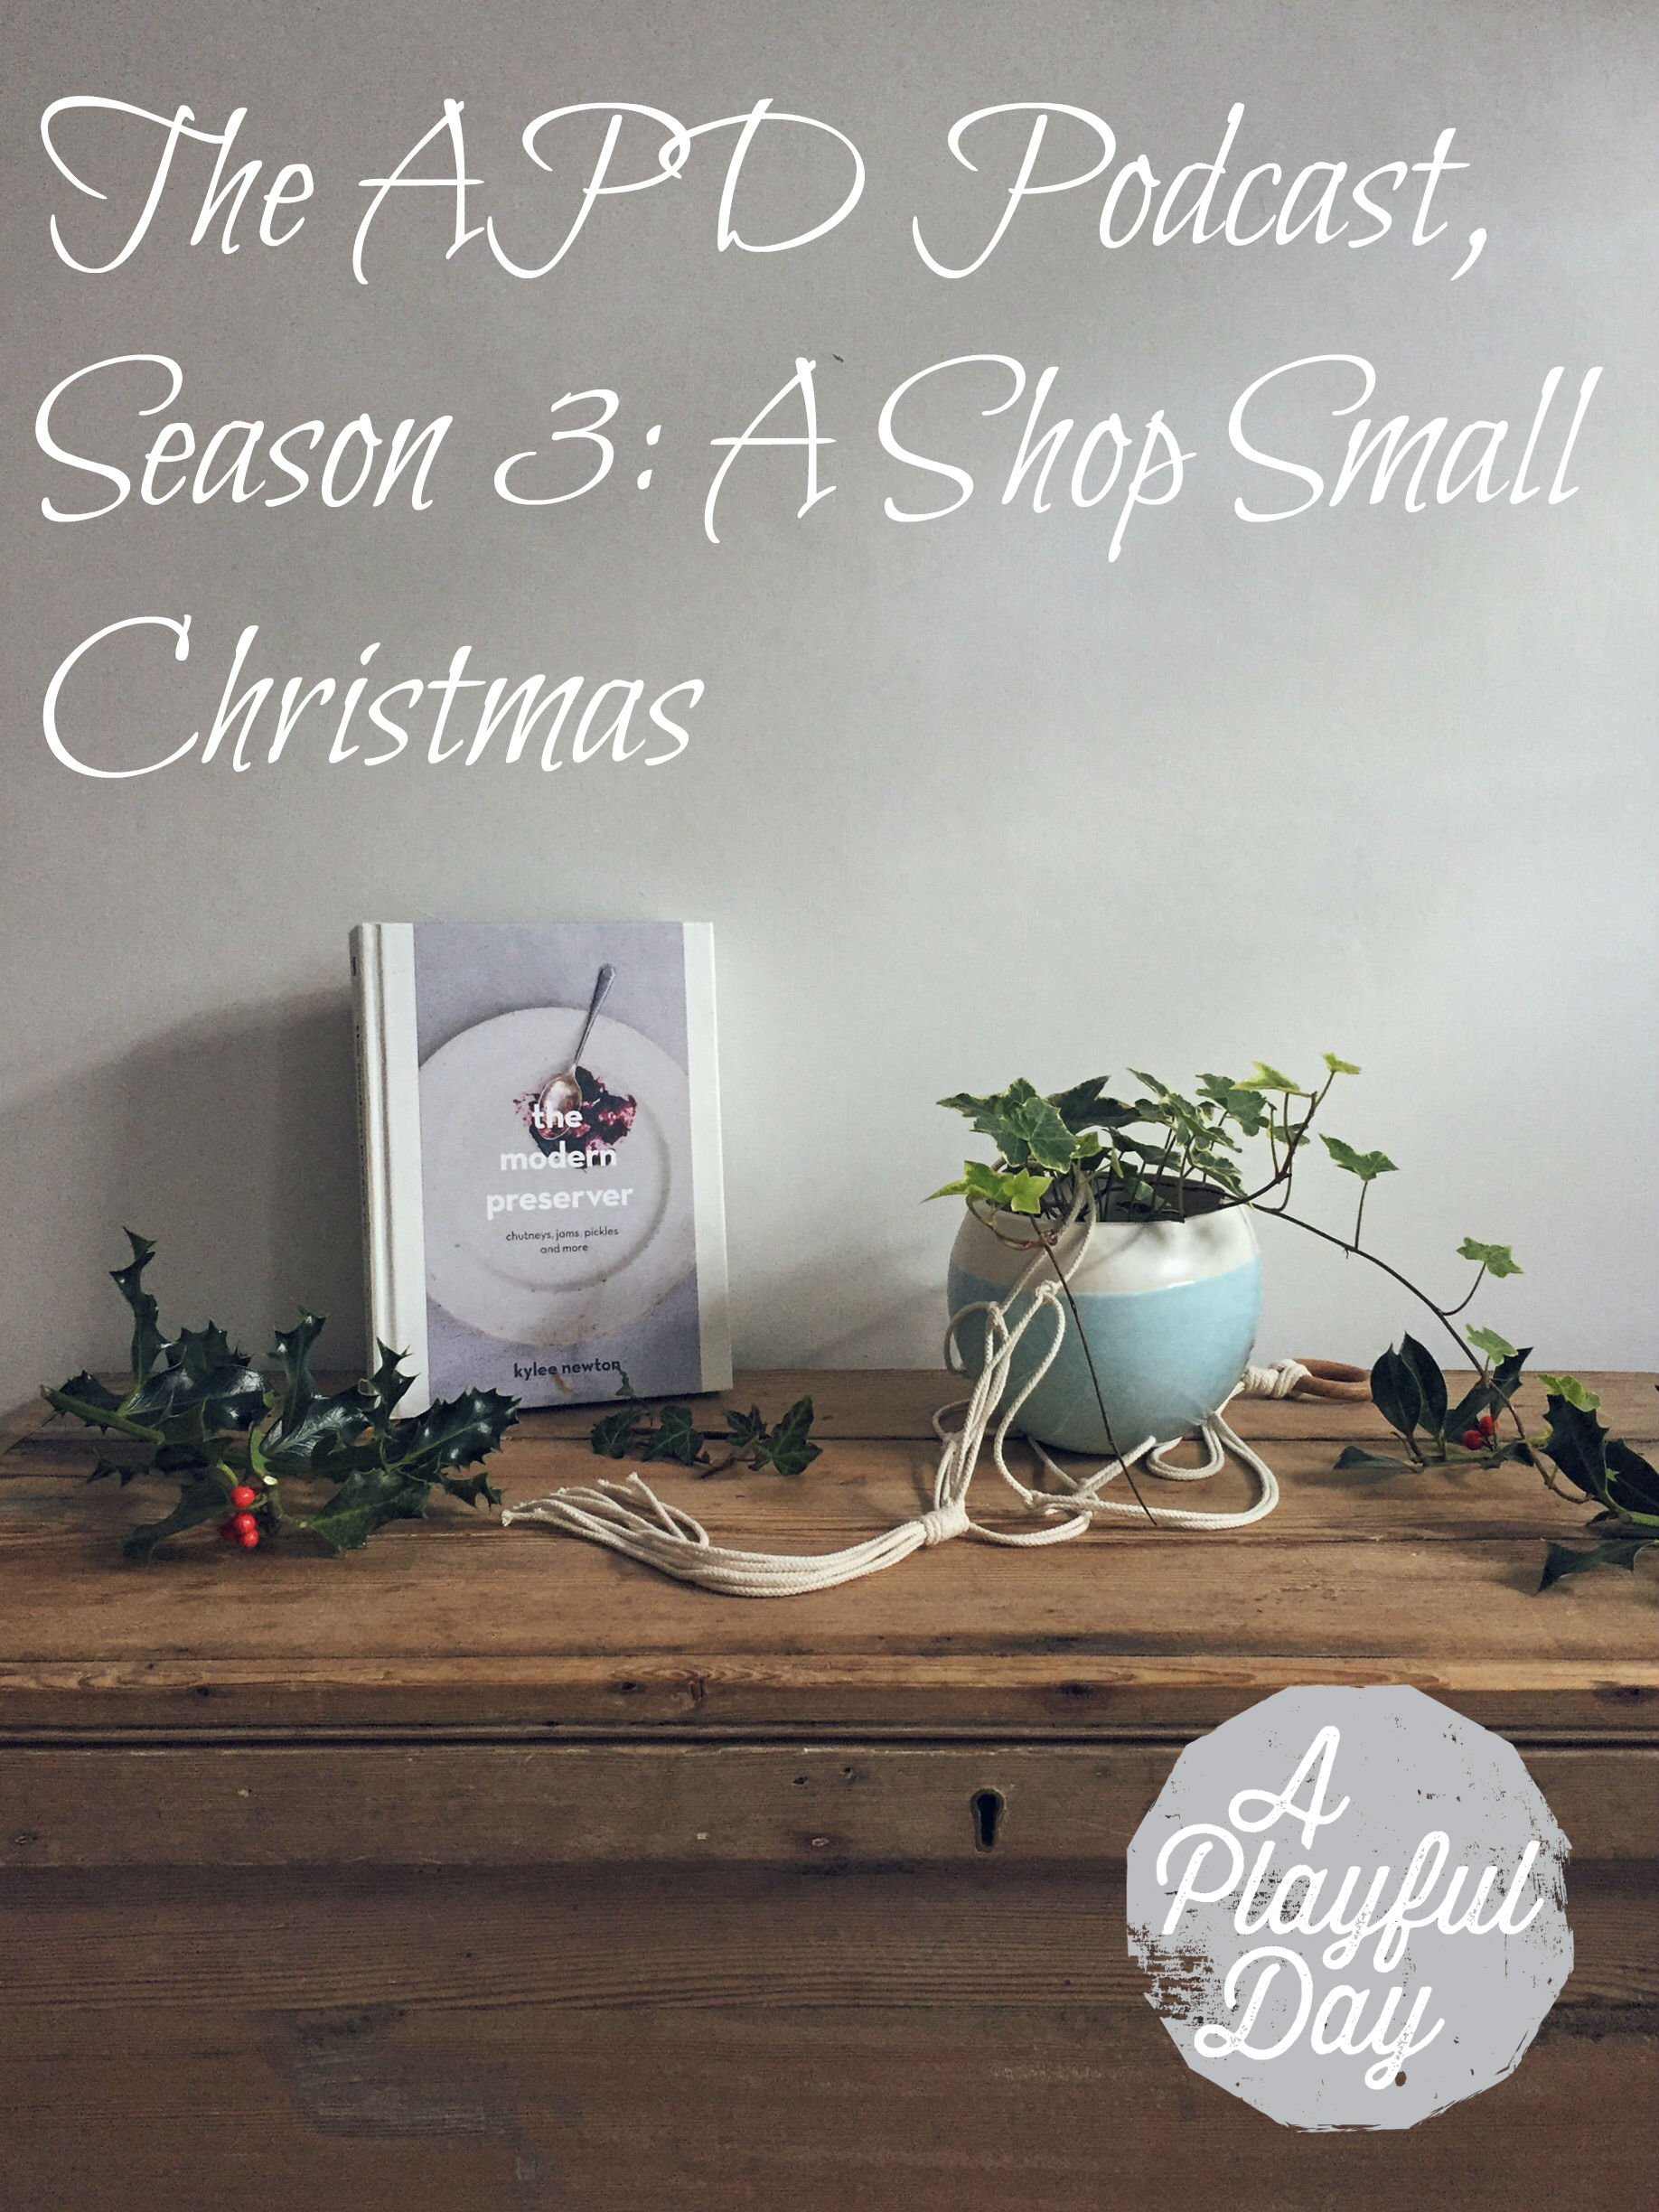 The APD Podcast, Season 3: A Shop Small Christmas